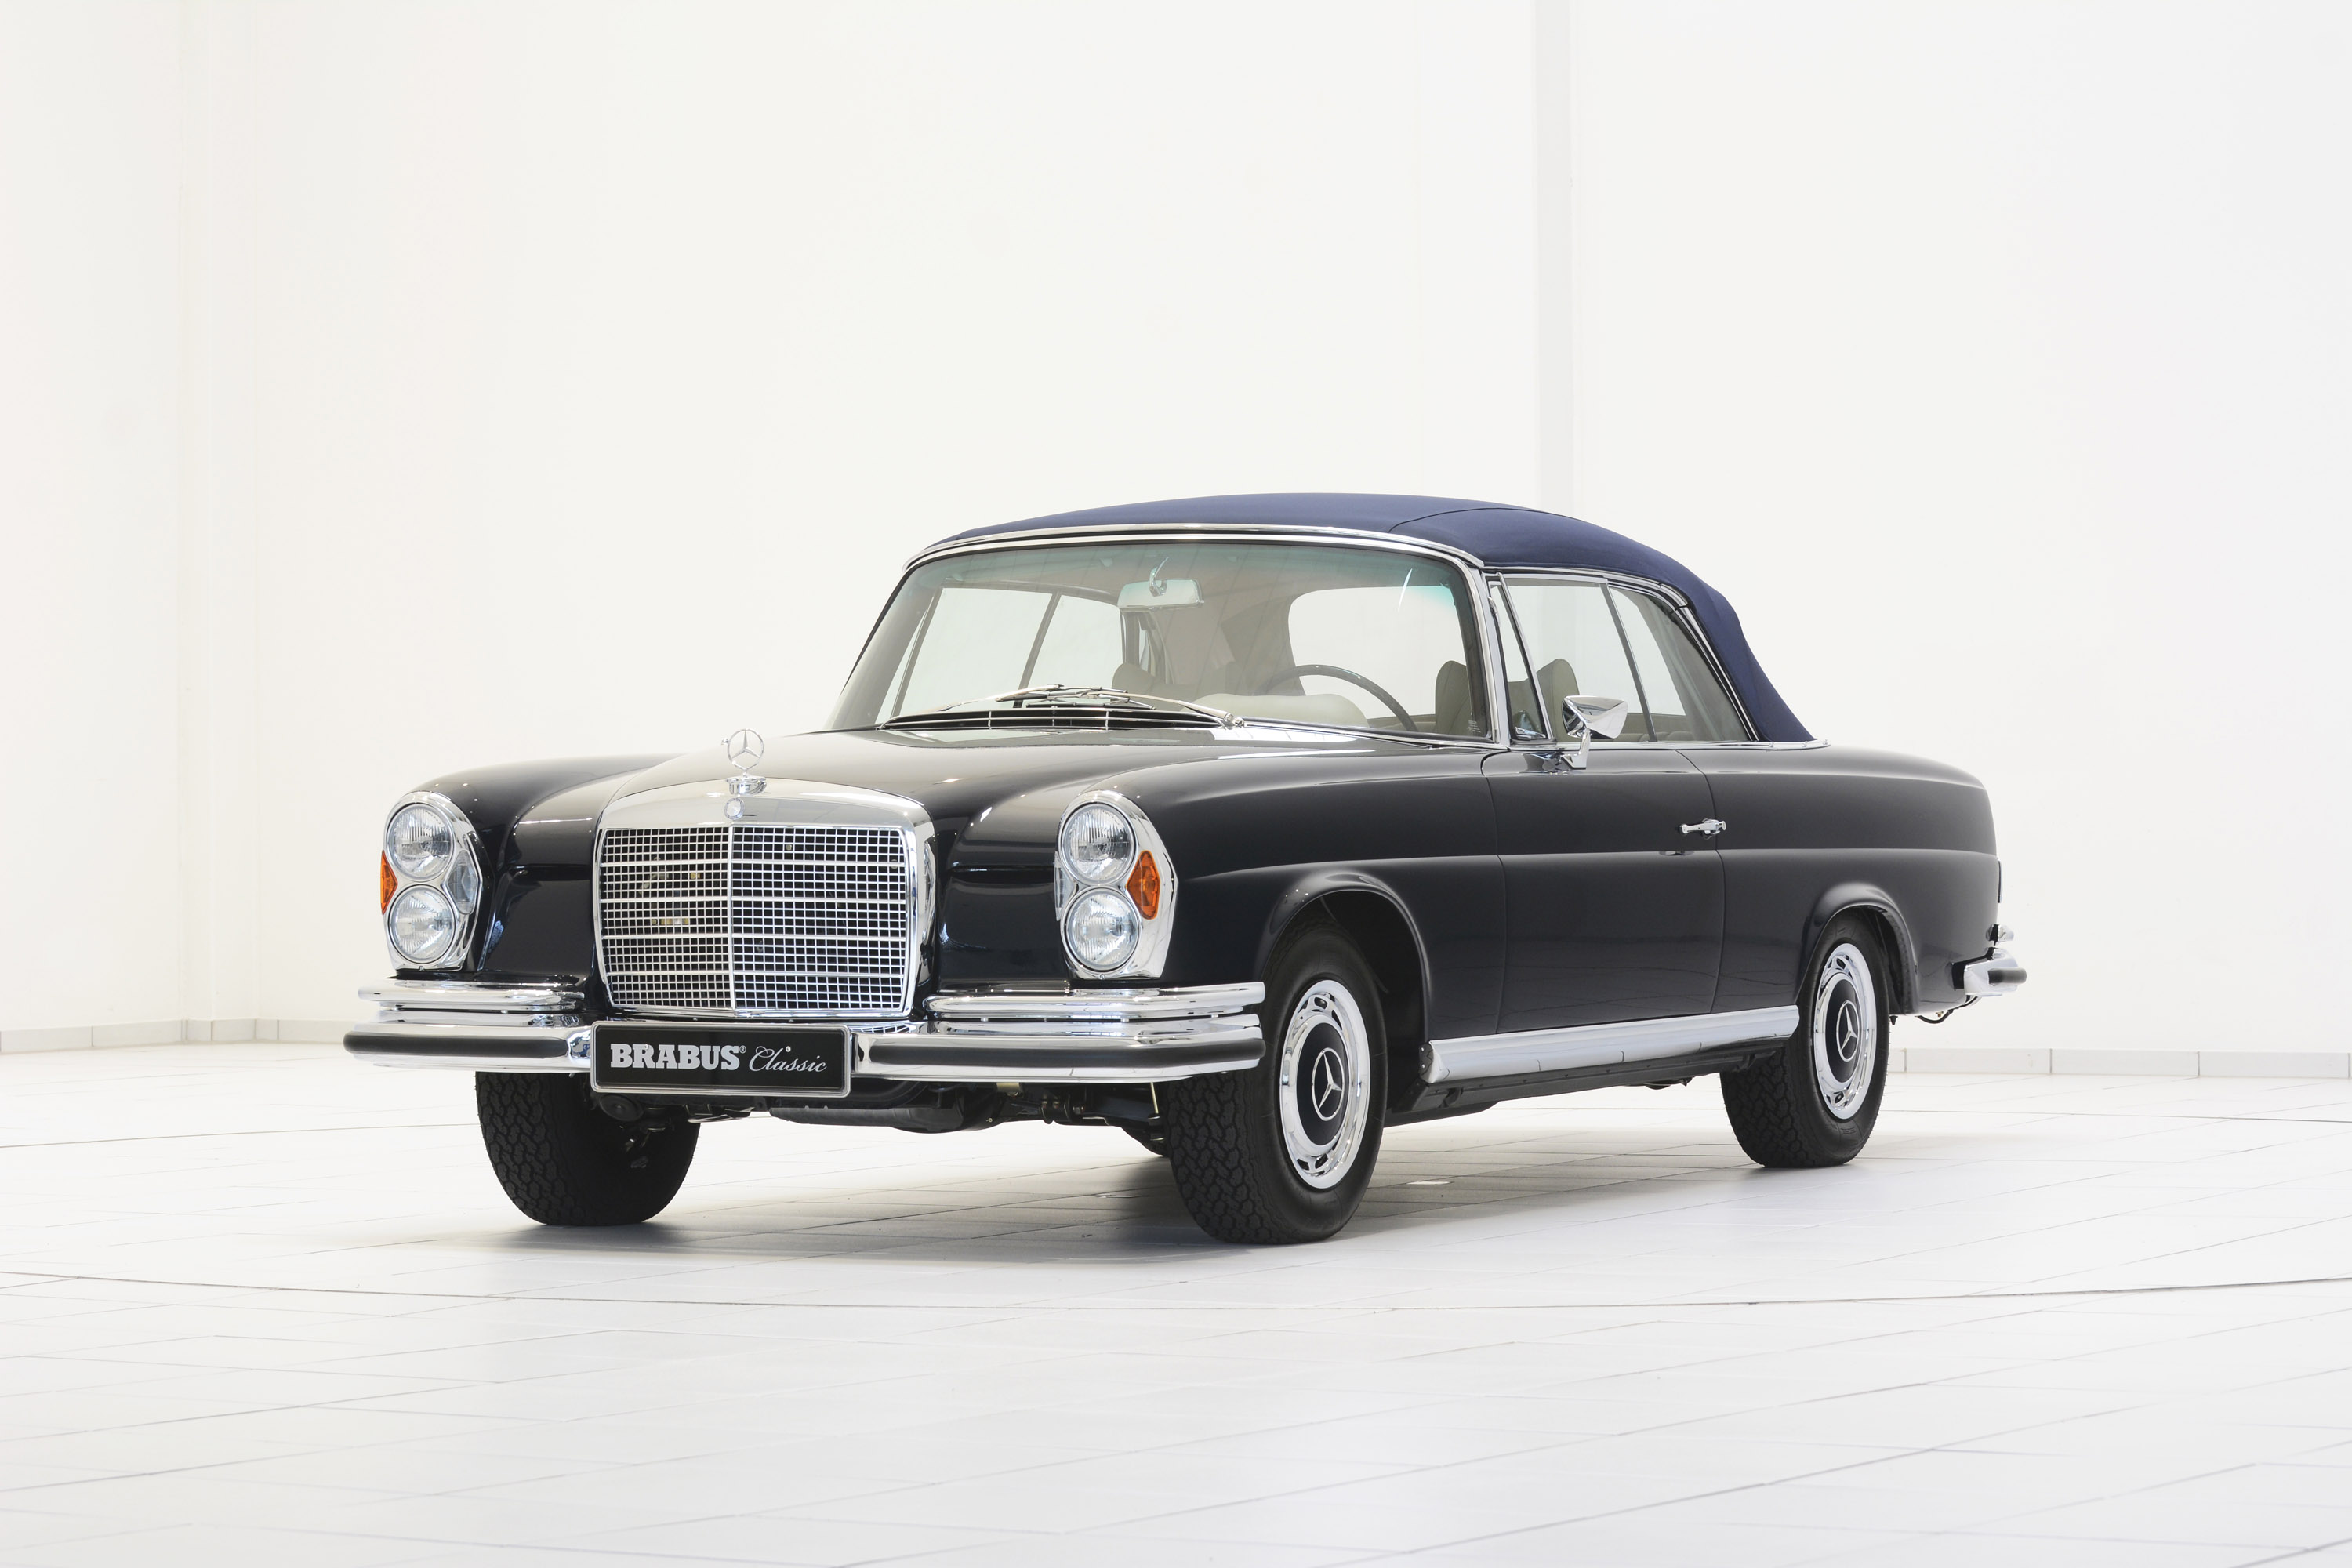 Brabus classic mercedes benz 280 se 3 5 cabriolet w111 for Mercedes benz se